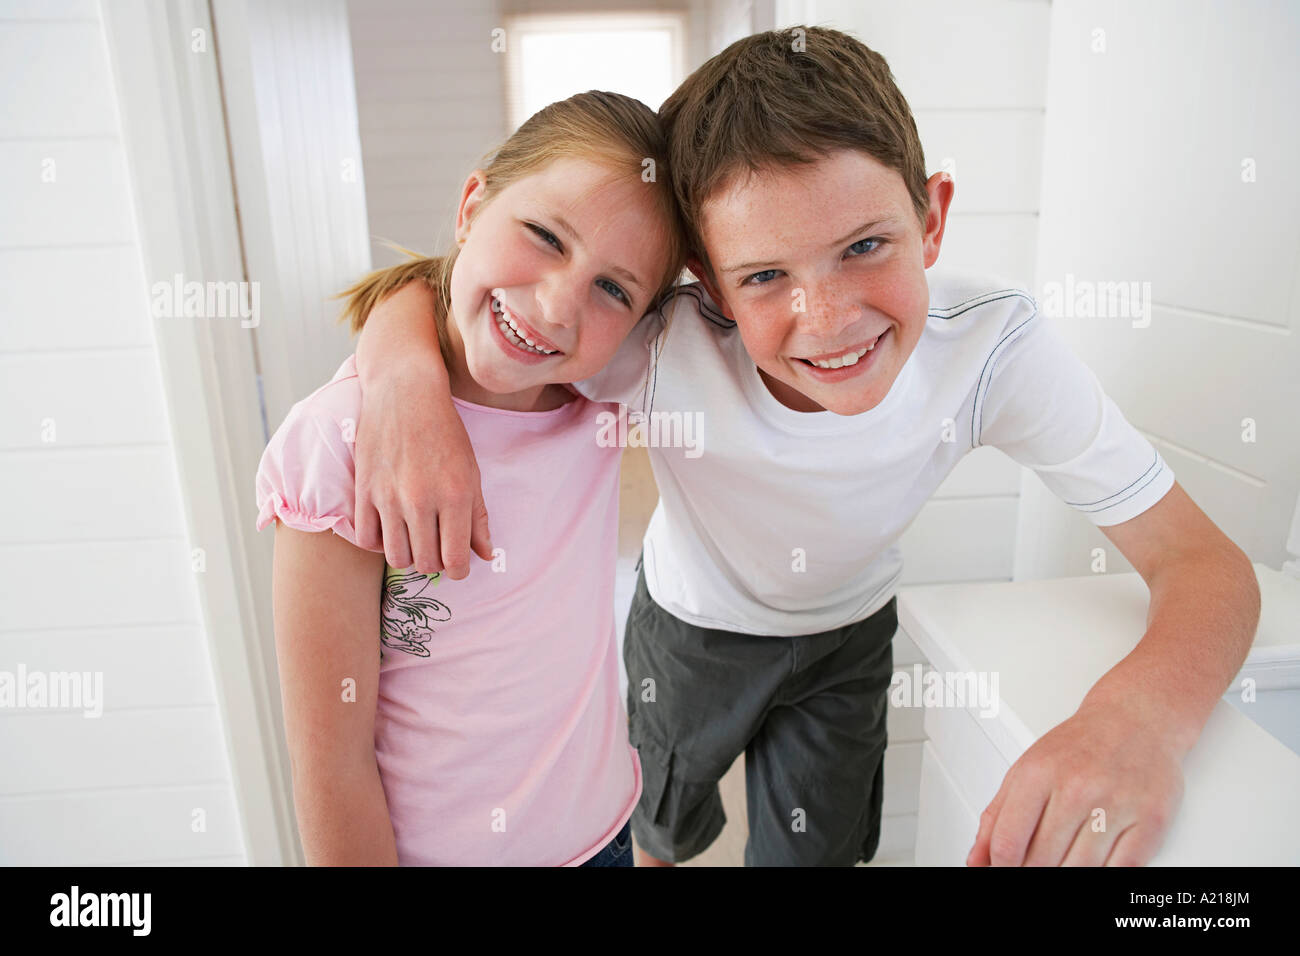 Young boy with arm around young girl in white room Stock Photo